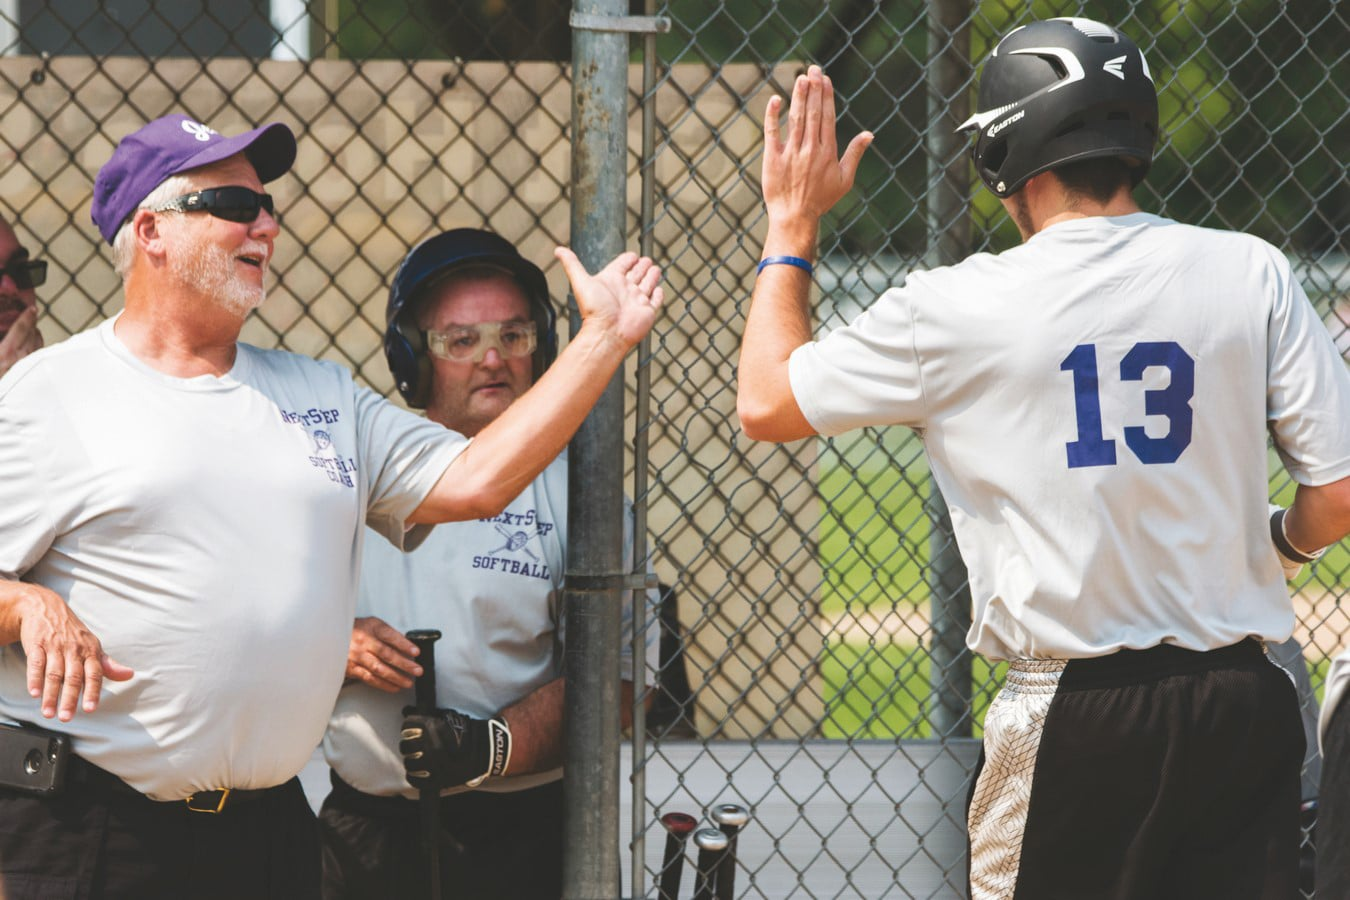 Athlete going in for a high-five with the coach standing by the dugout